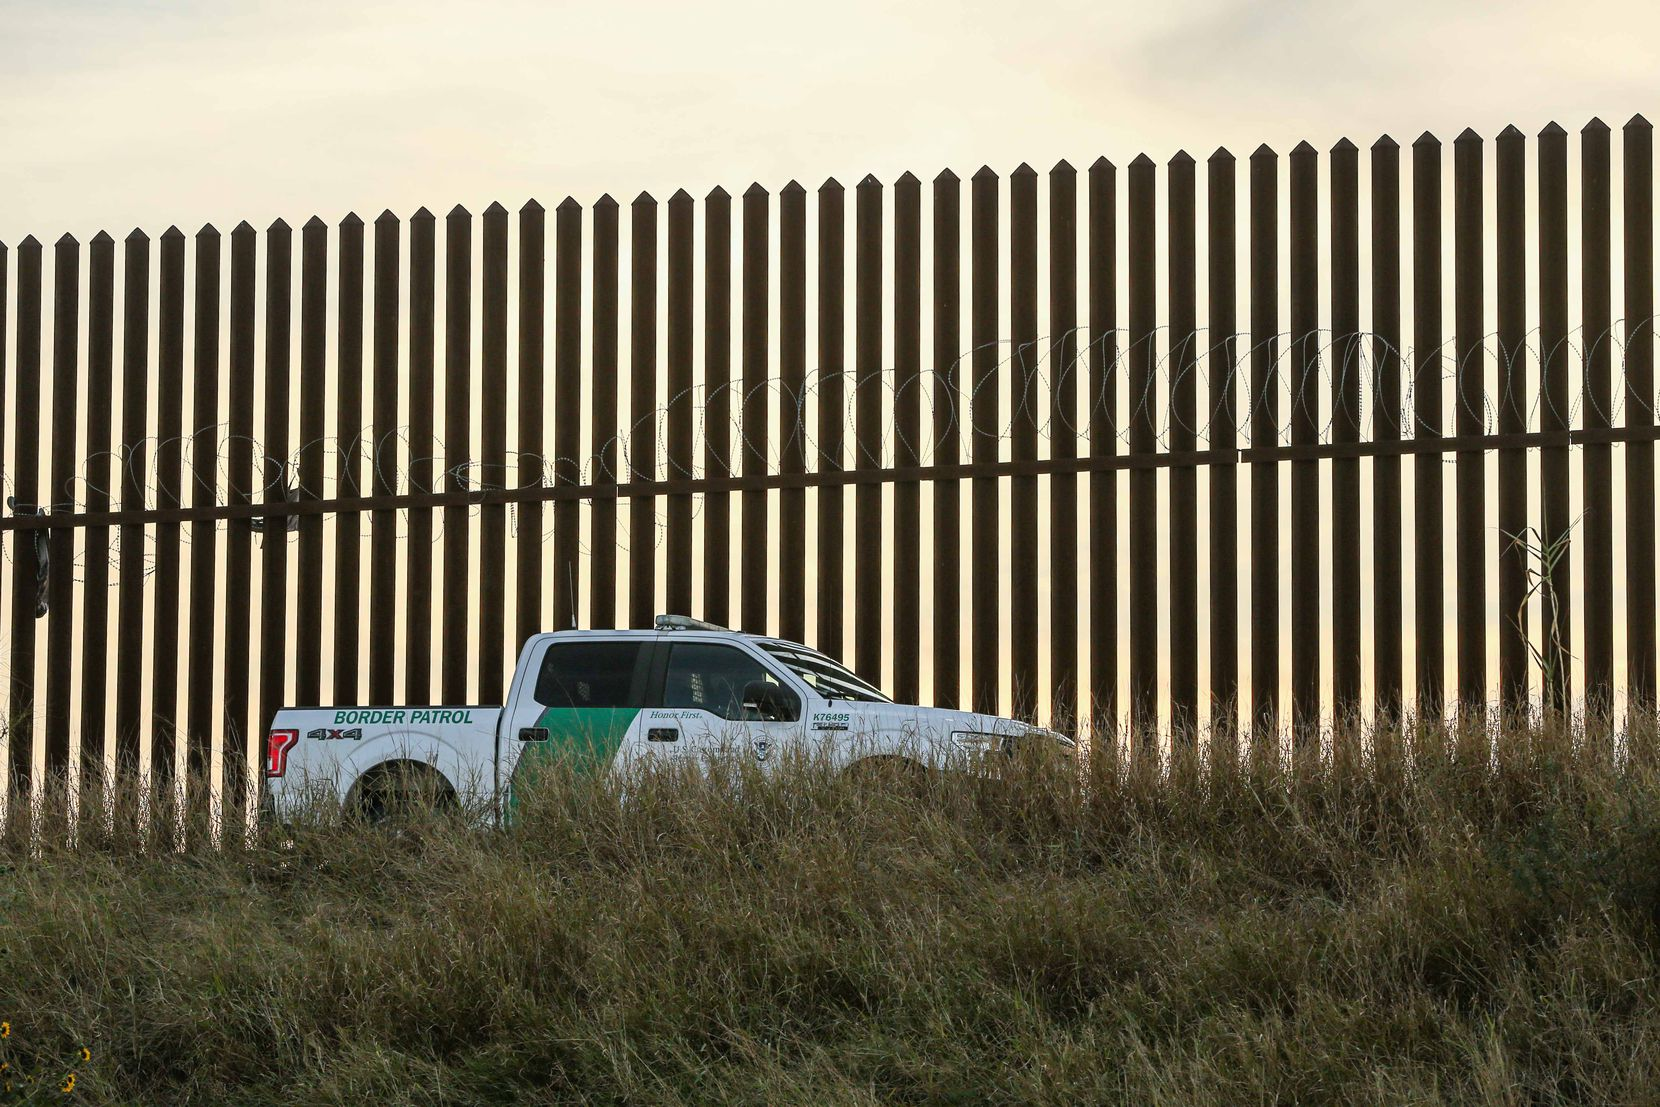 Border patrol watches over near the border with Mexico in Hidalgo, Texas on Wednesday, January 13, 2021.